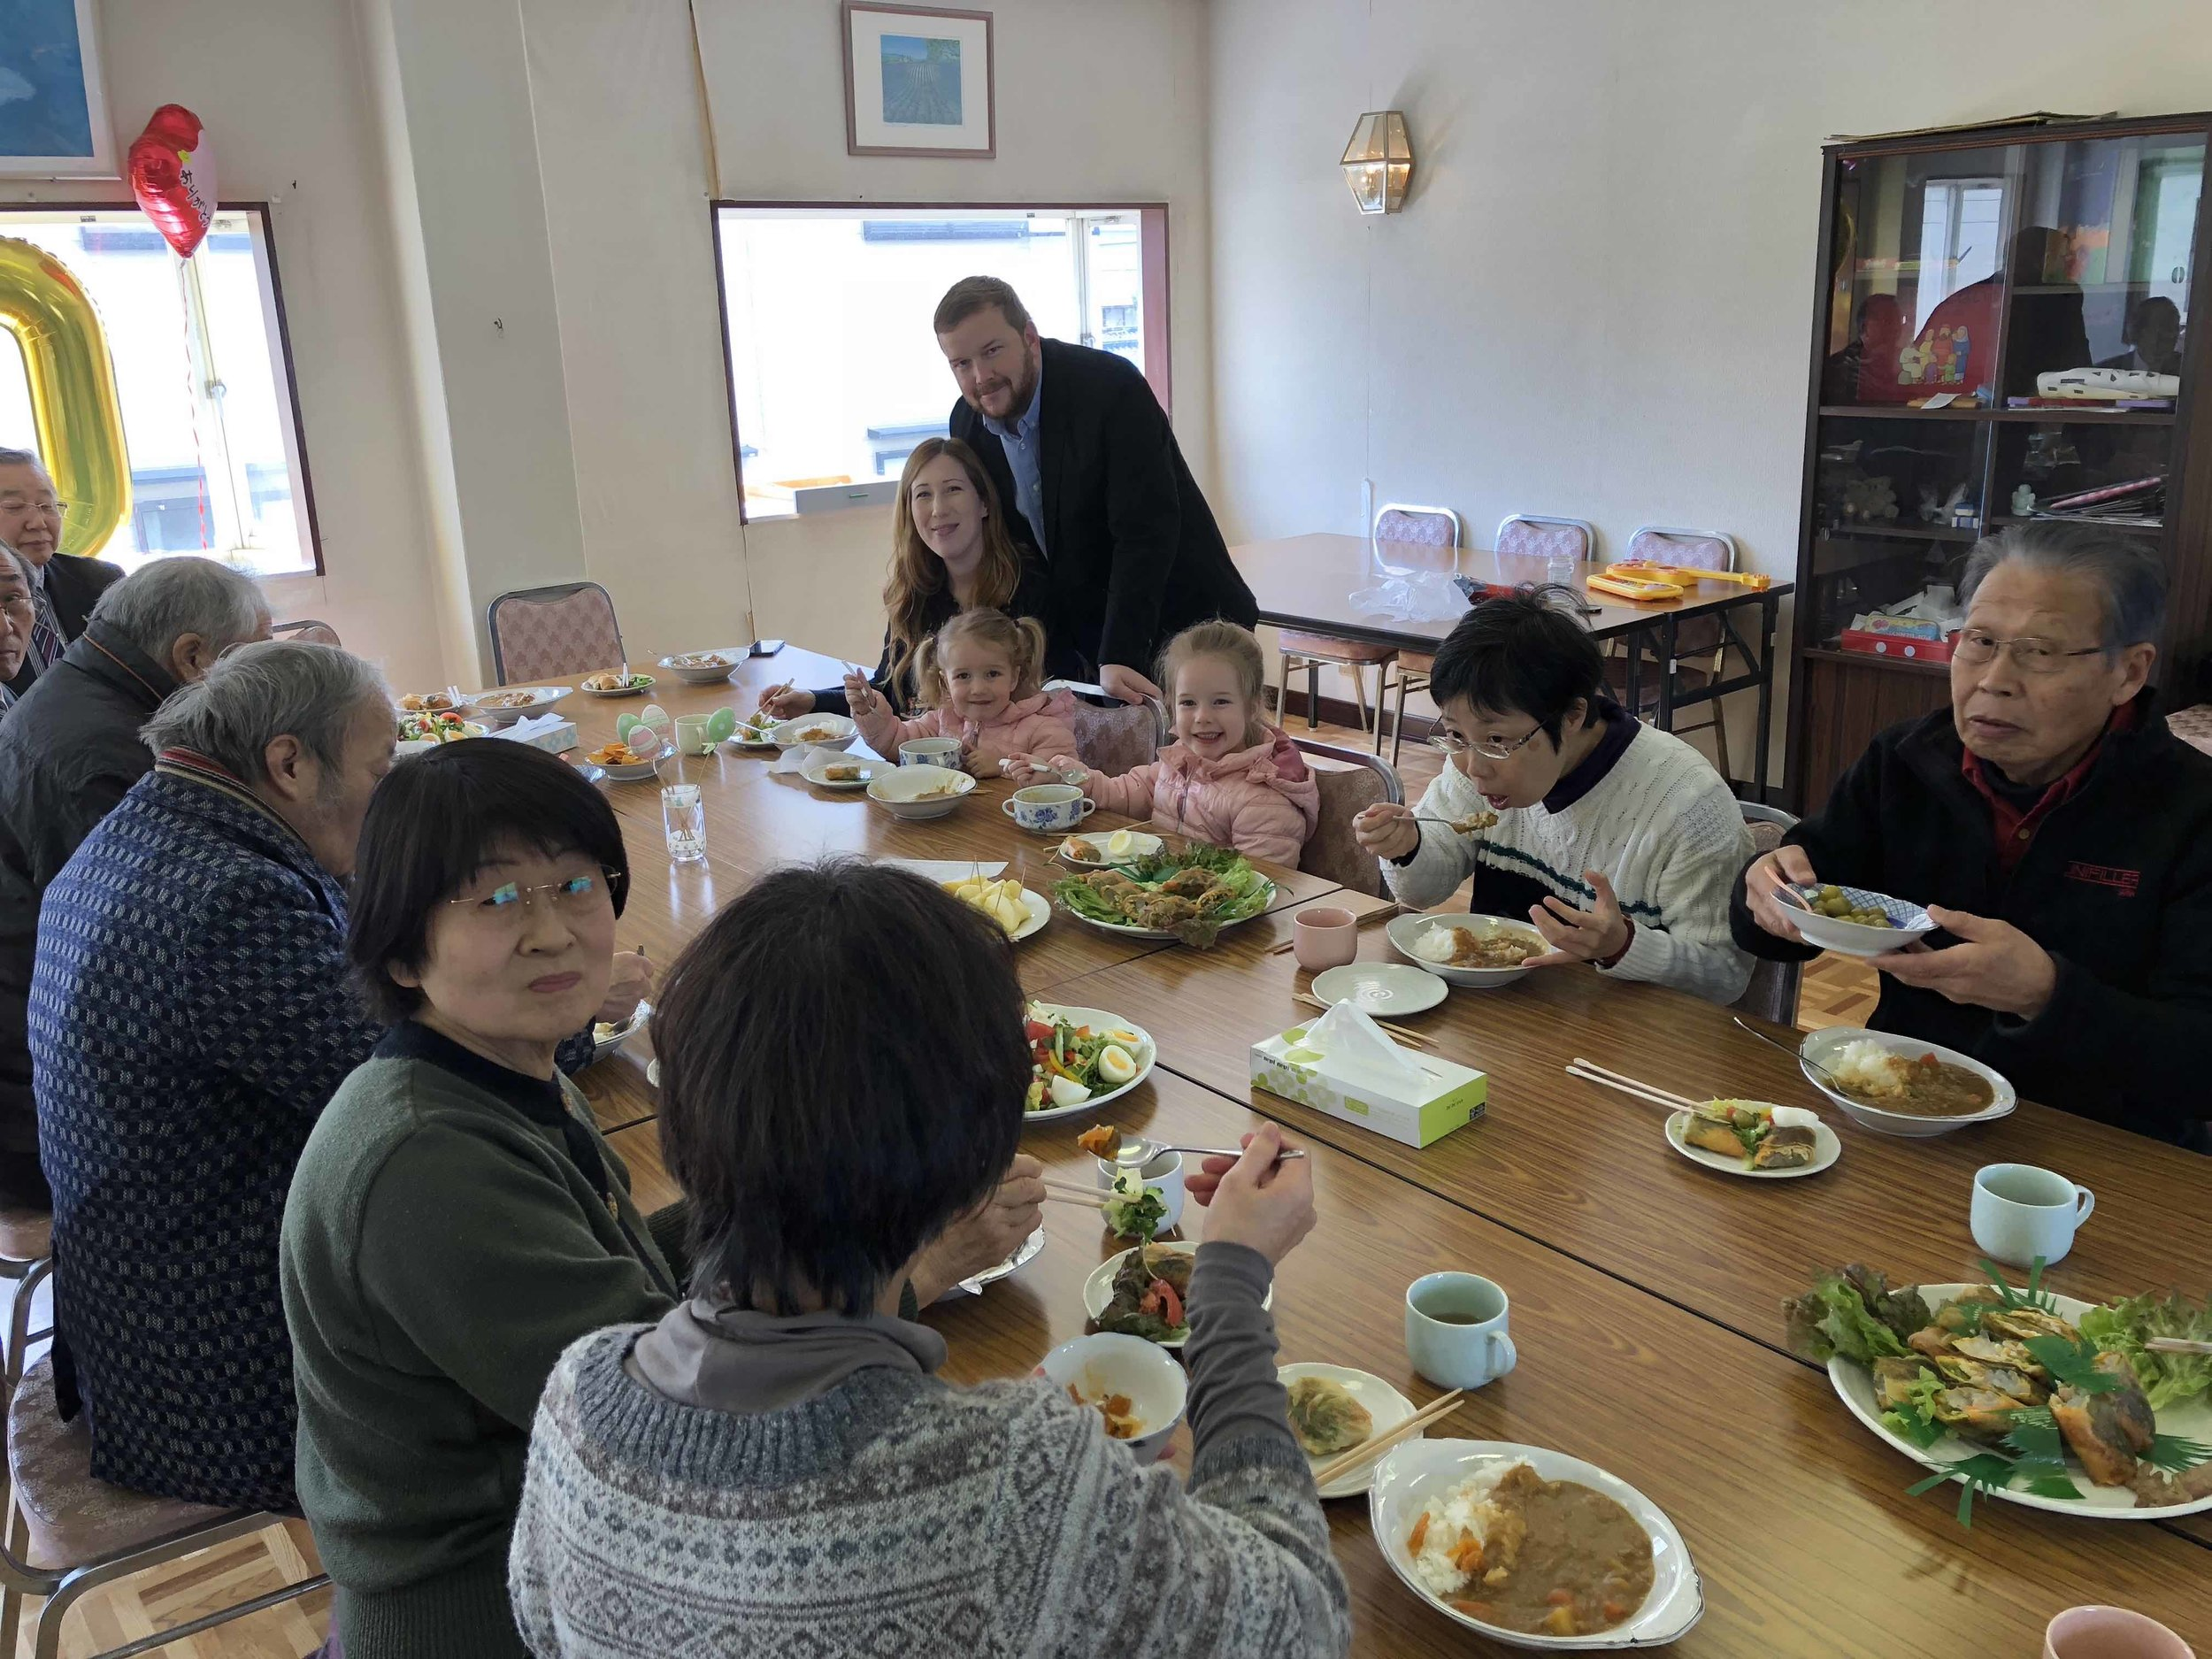 Most churches in Japan share a meal after the service. We enjoy the weekly fellowship of these faithful saints!